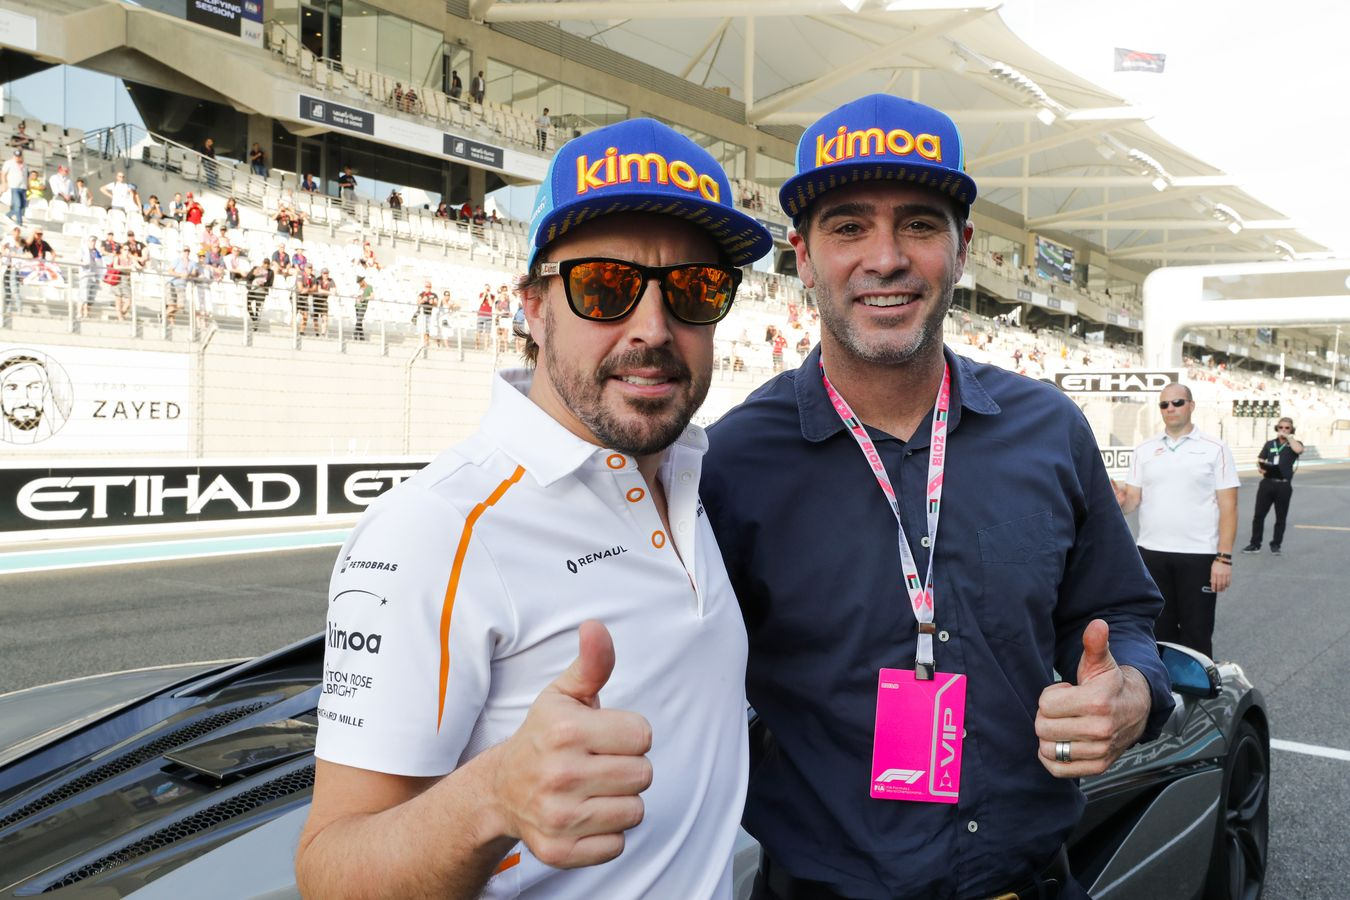 fernando-alonso-last-race-photos